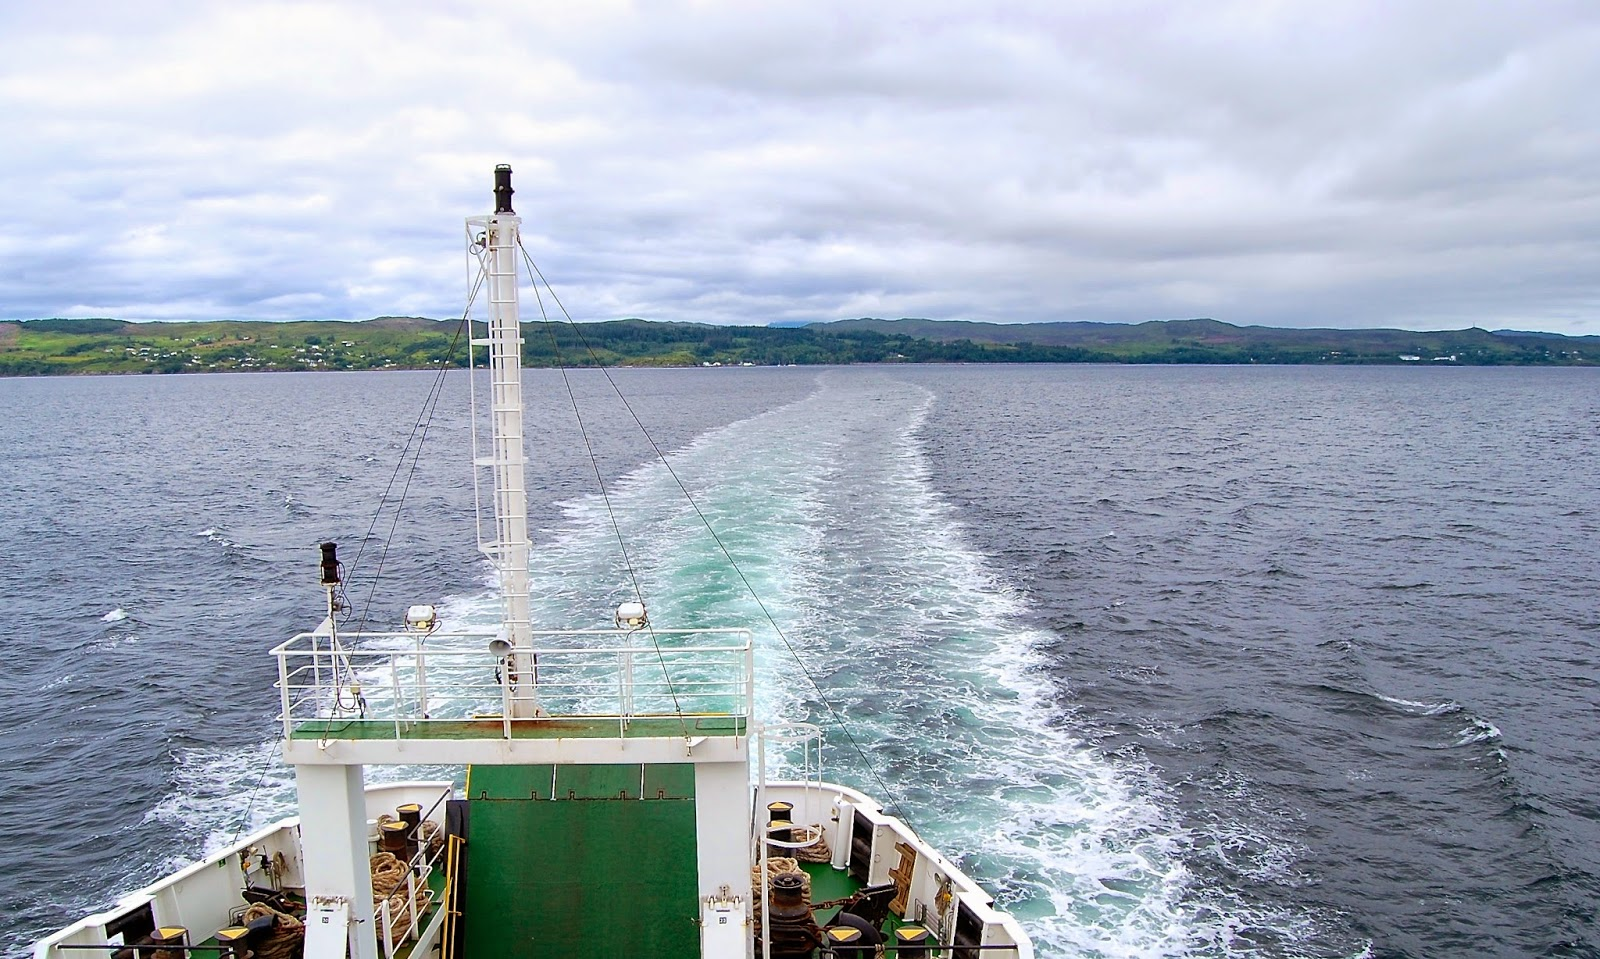 Wake of a ferry boat